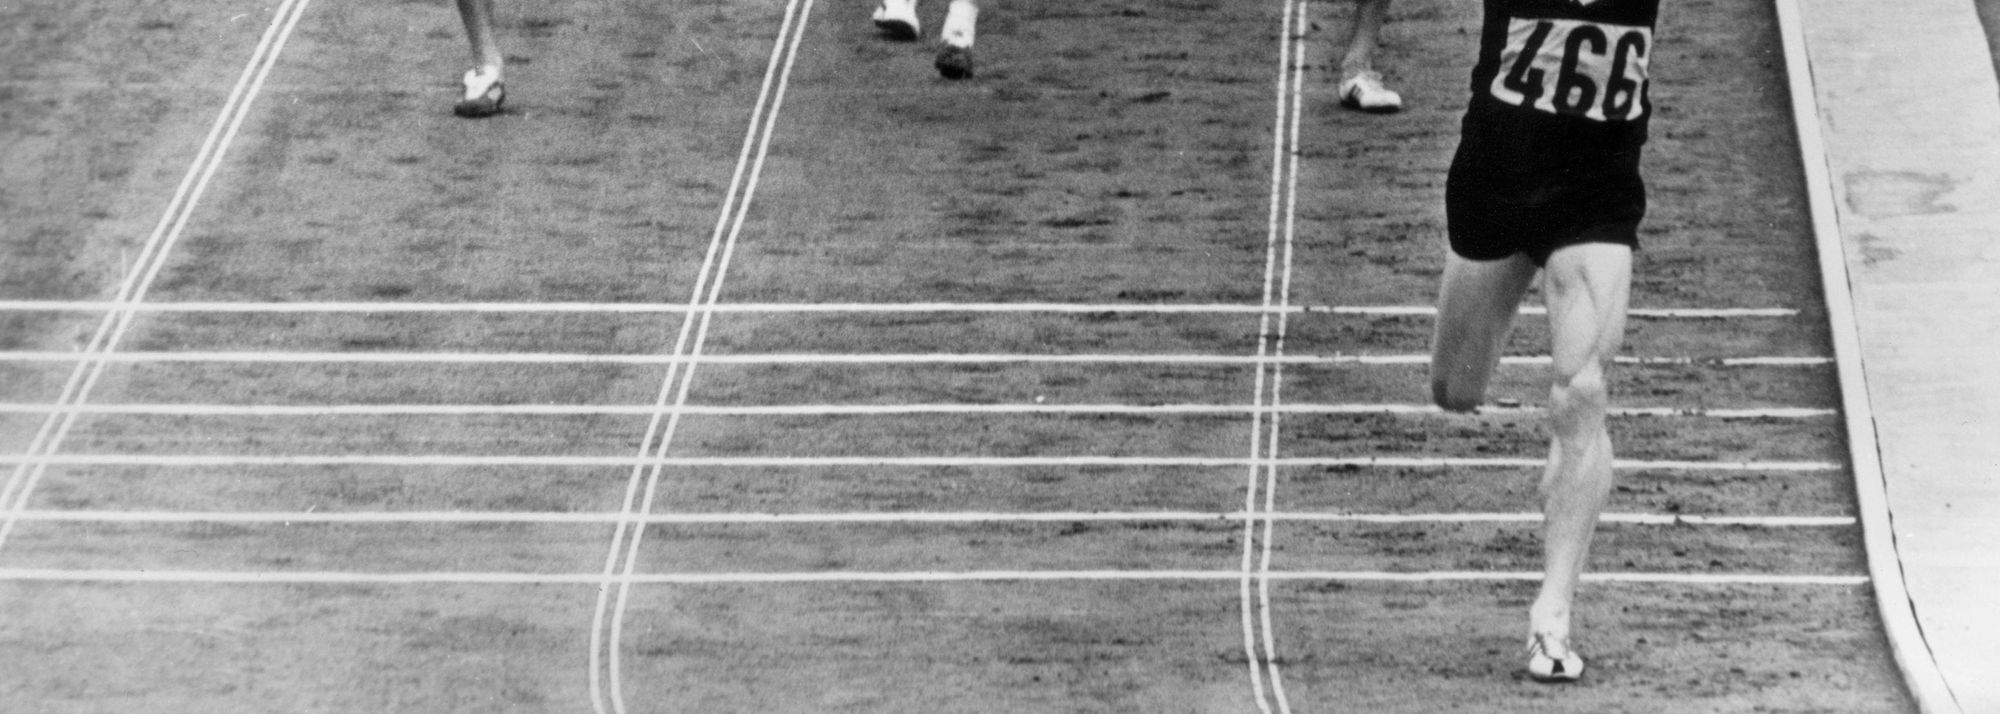 On 21 October 1964, nine men lined up for the Tokyo Olympic 1500m final. Three minutes and 38.1 seconds later, New Zealand's Peter Snell became the first man in 44 years to complete an Olympic 800m/1500m double.